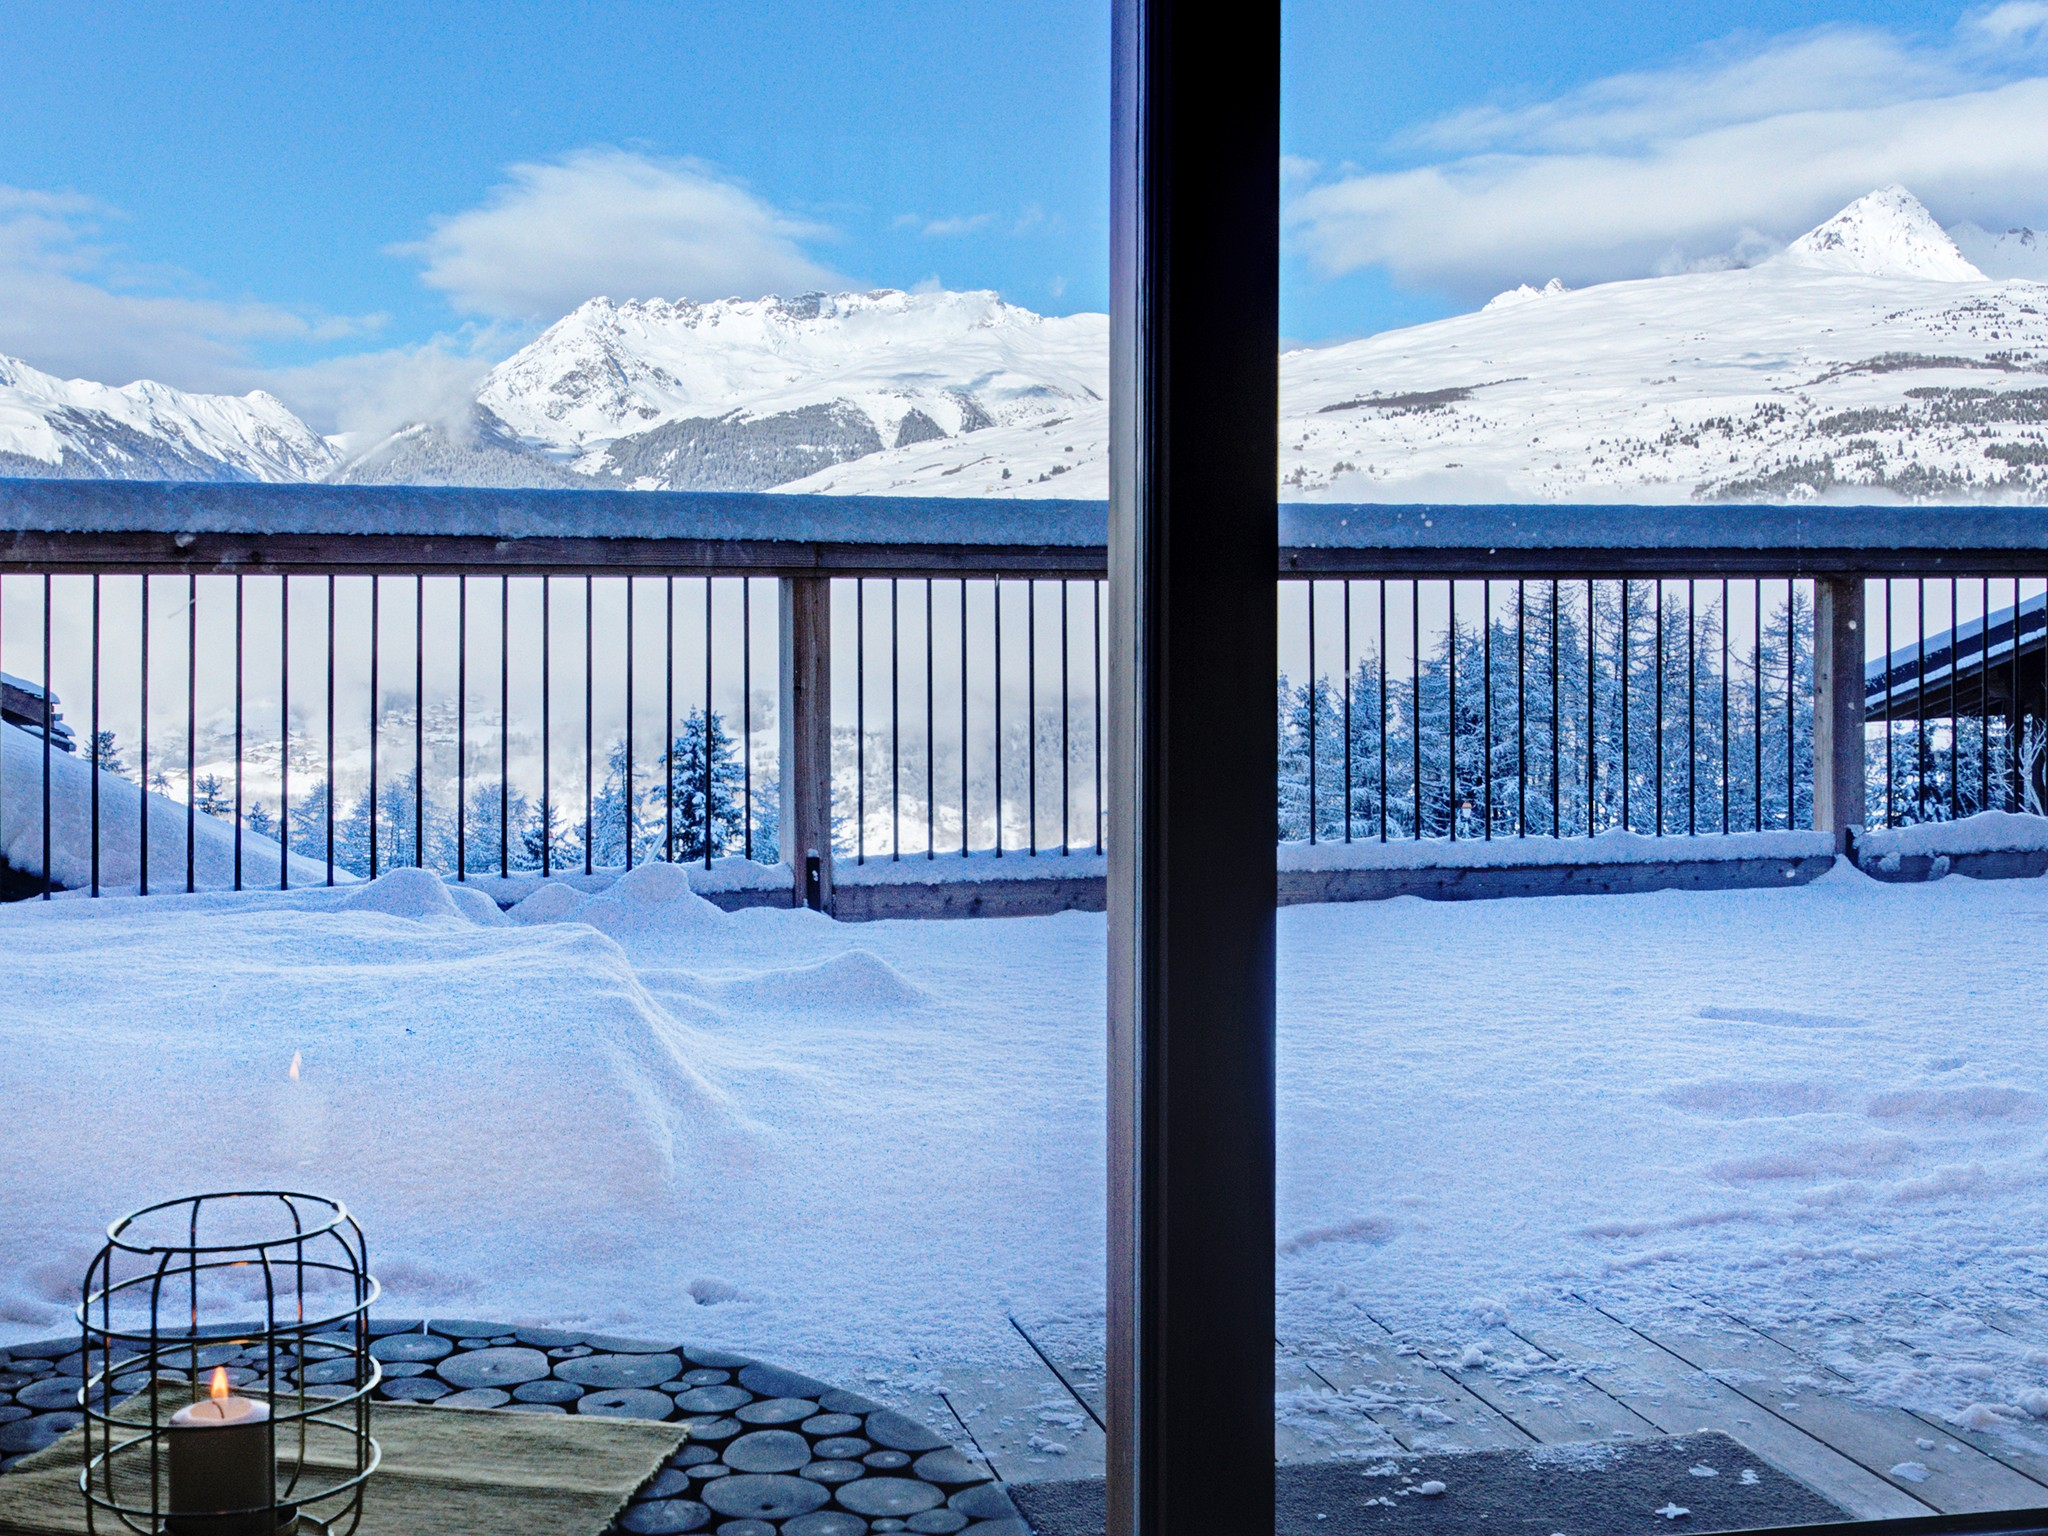 Chalet Ski Dream - panoramic view